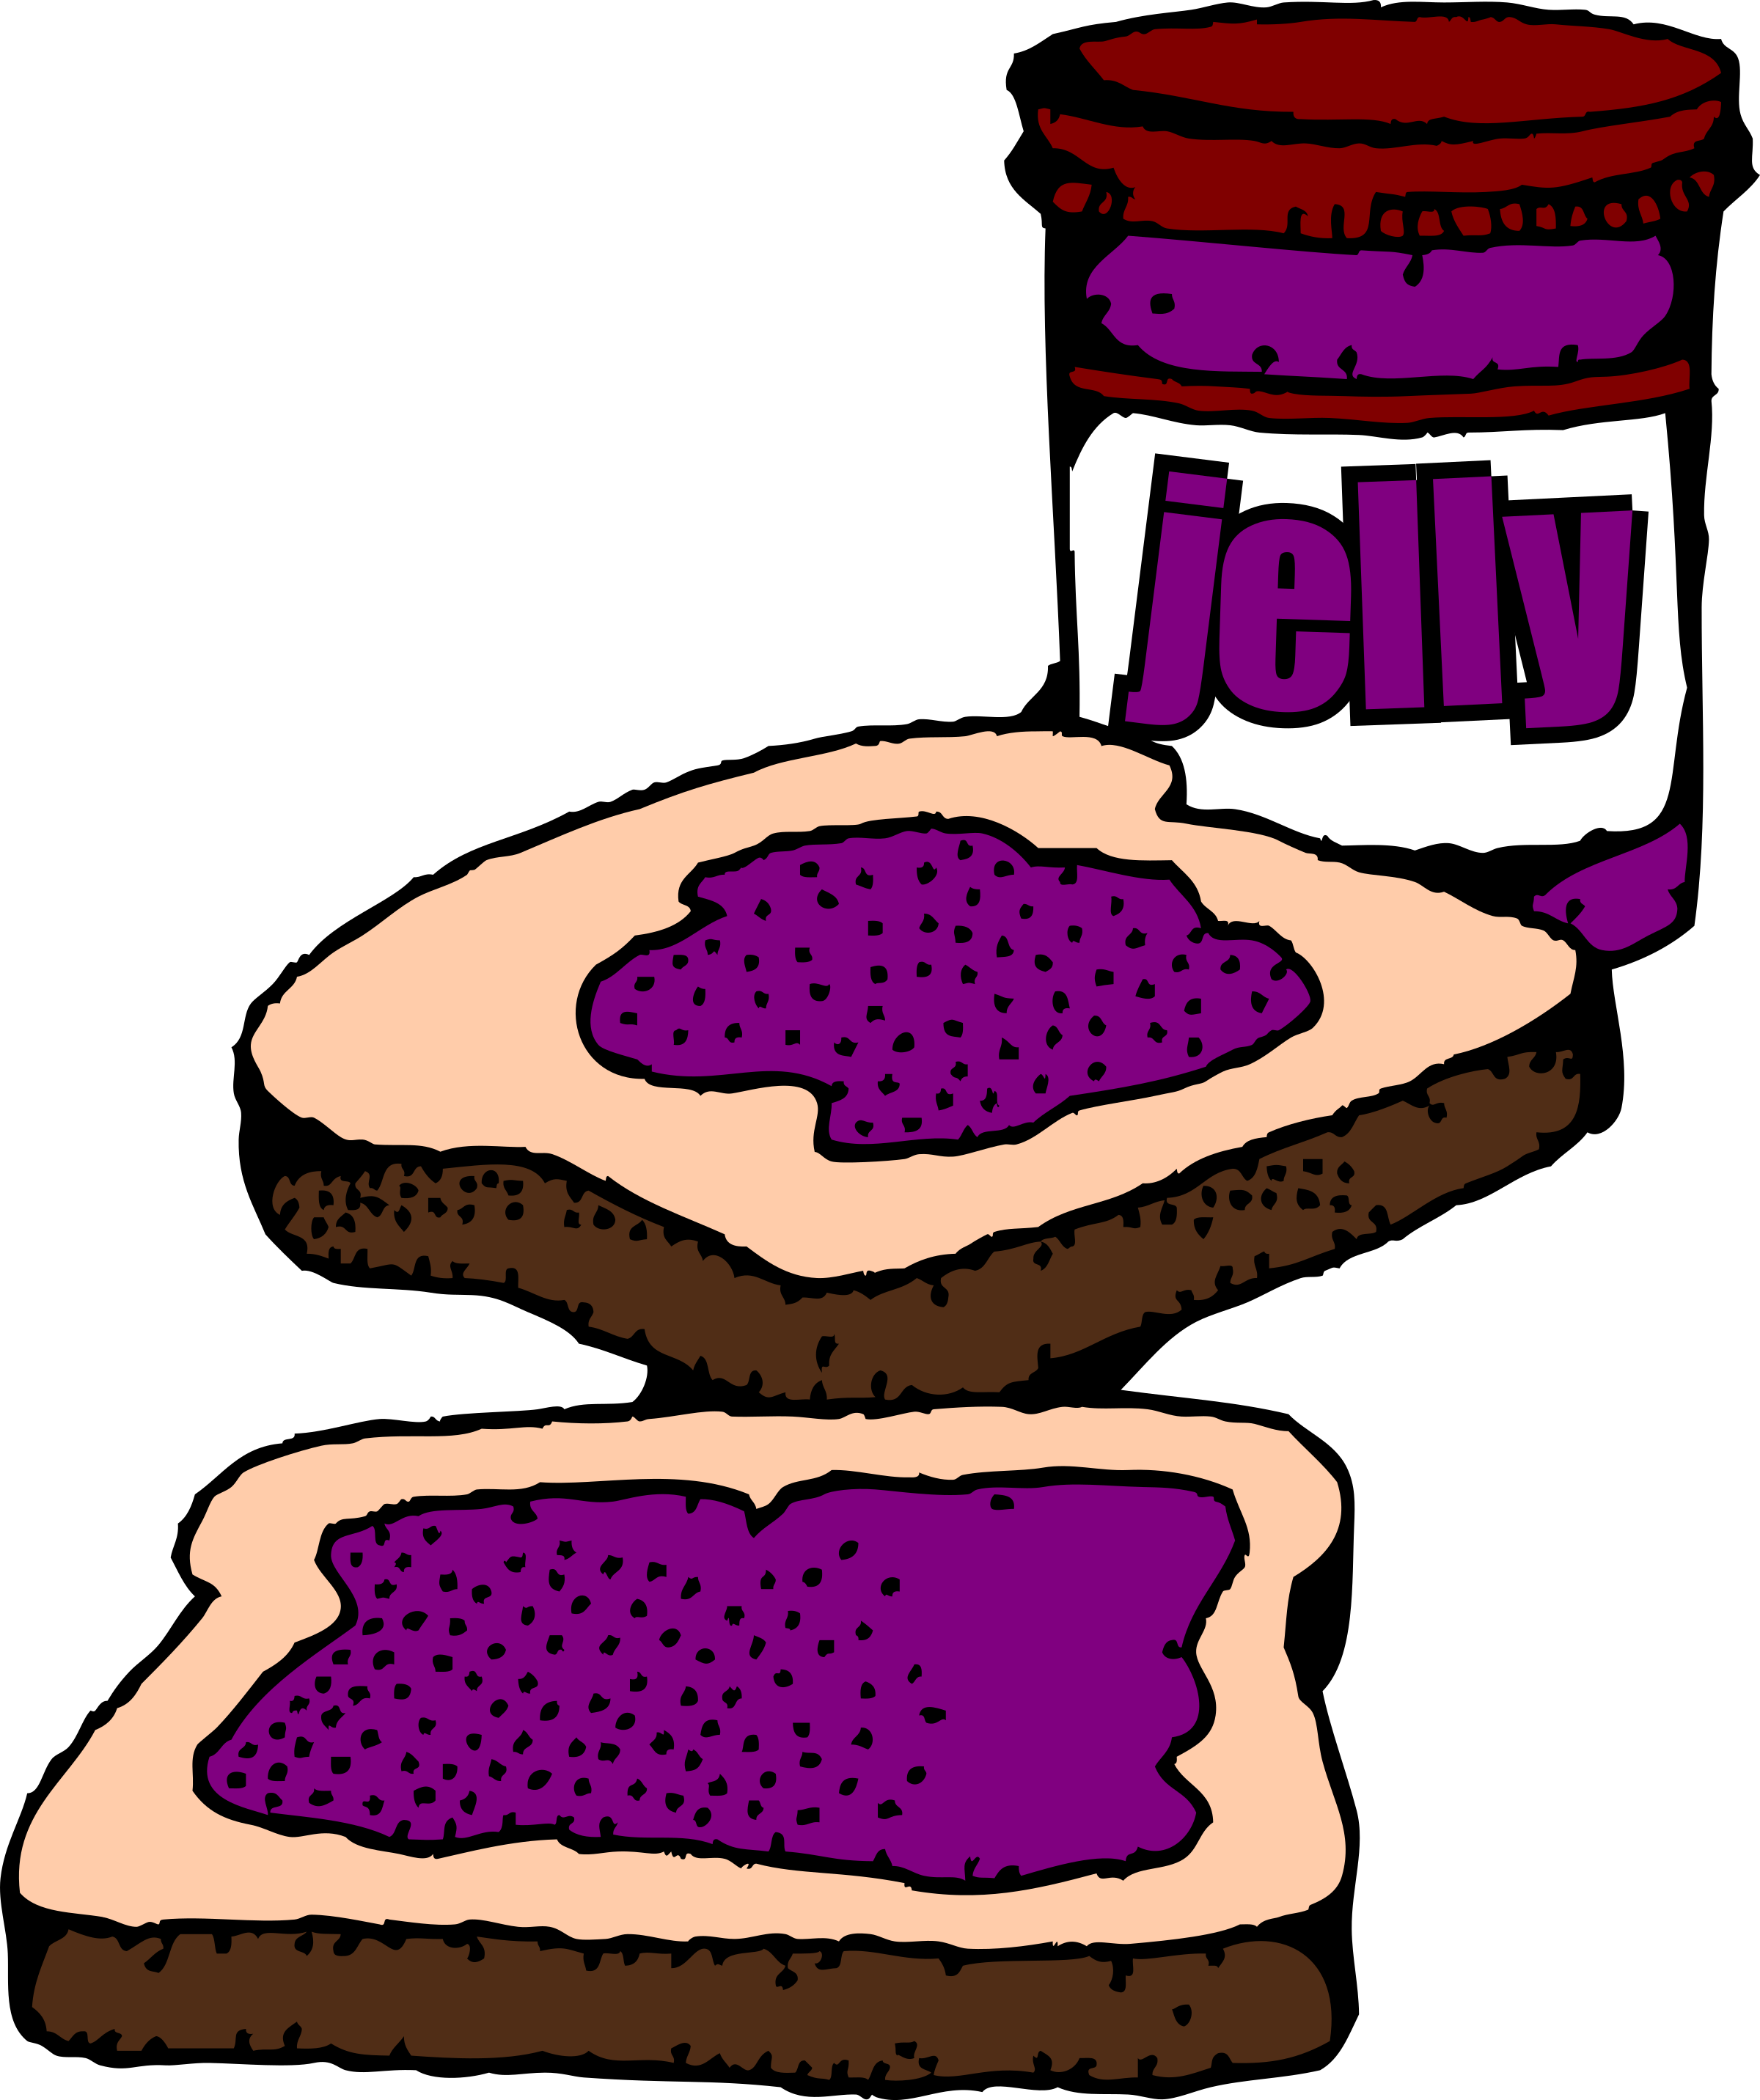 Jelly clipart #4, Download drawings